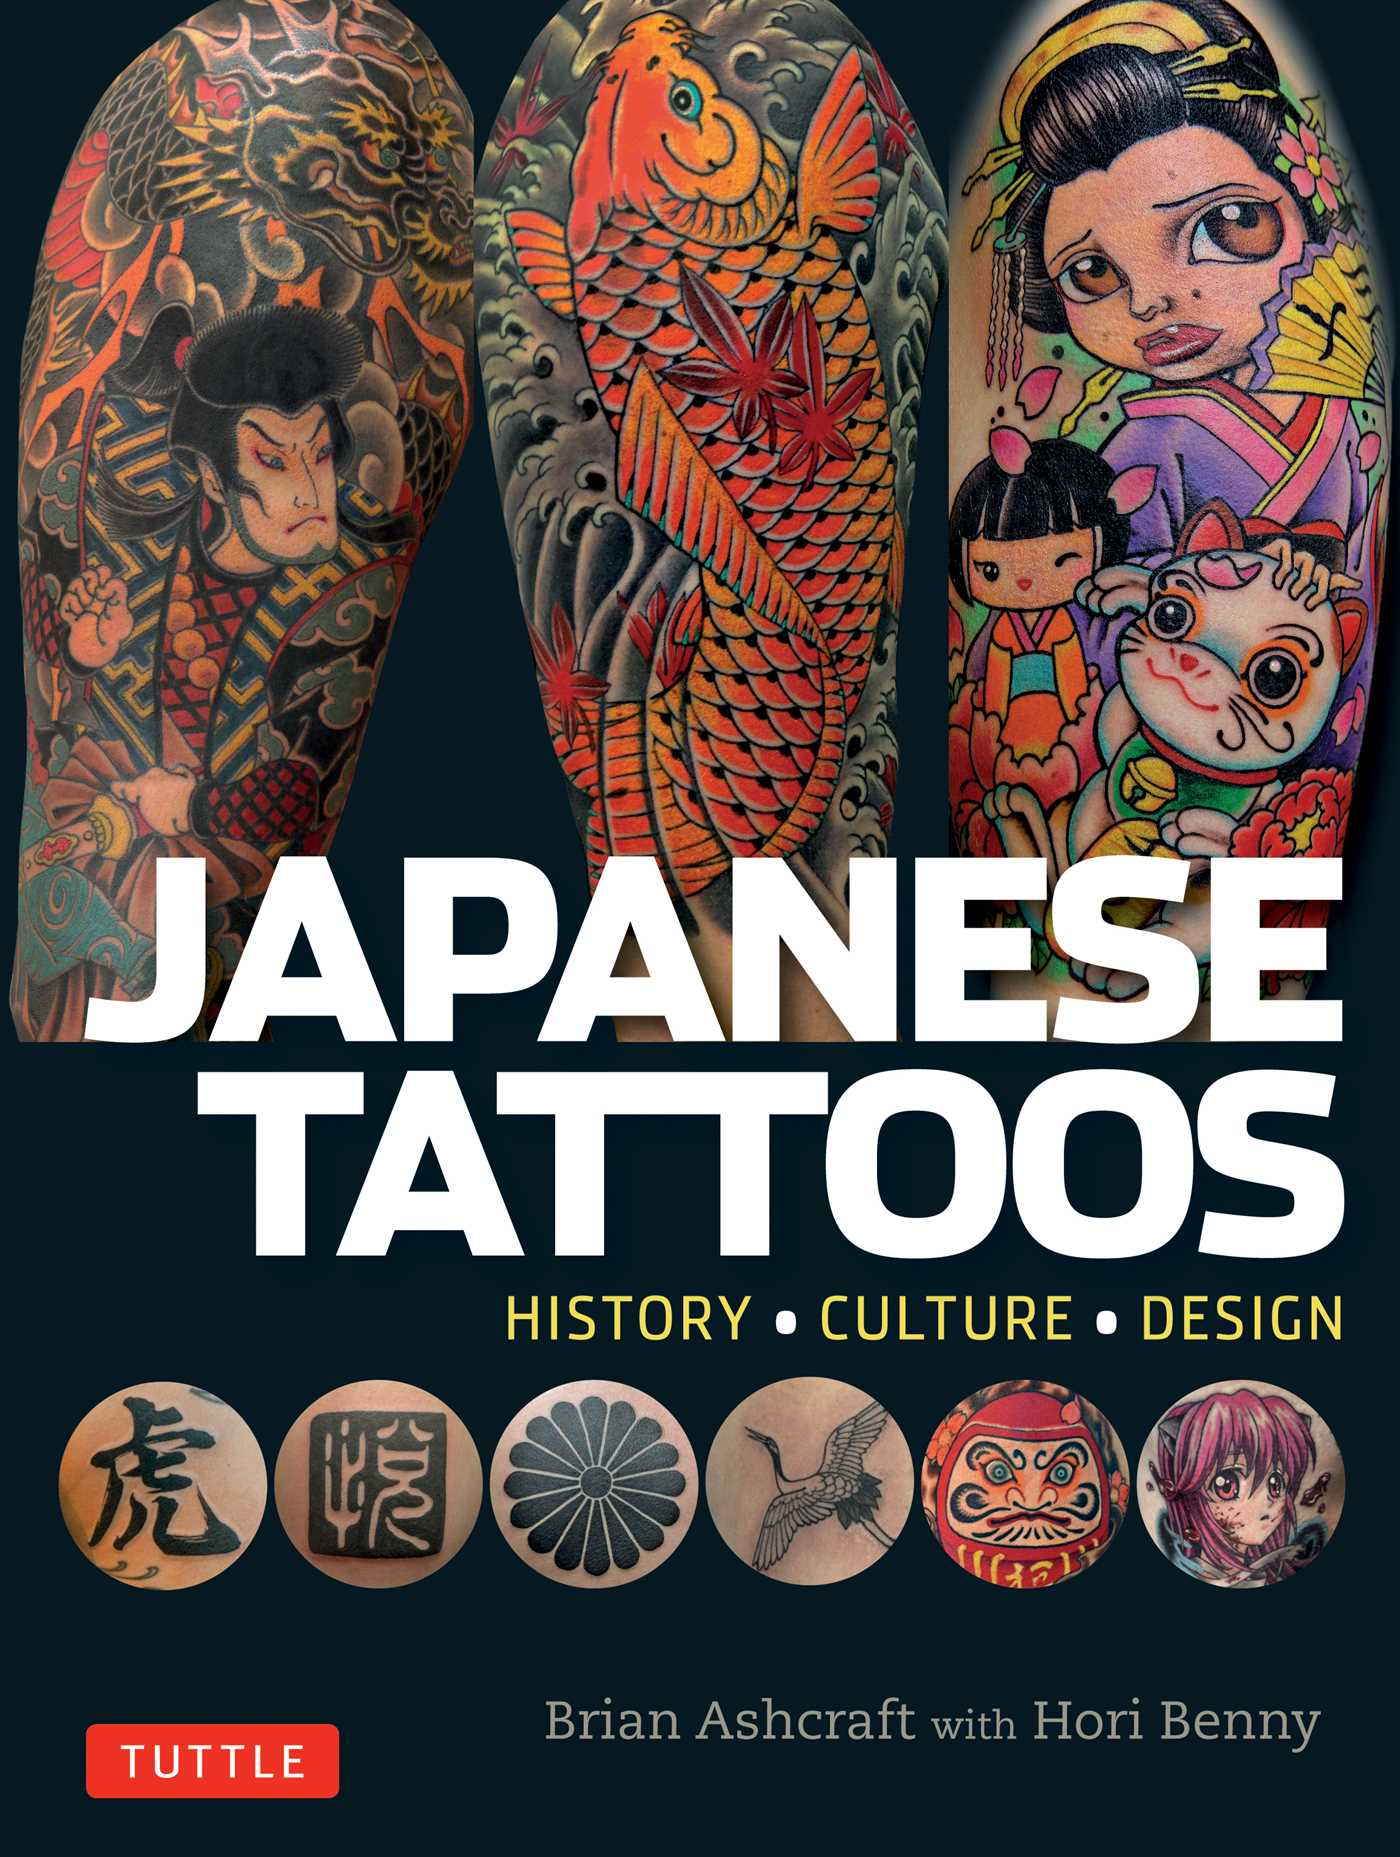 Japanese tattoos 9784805313510 hr